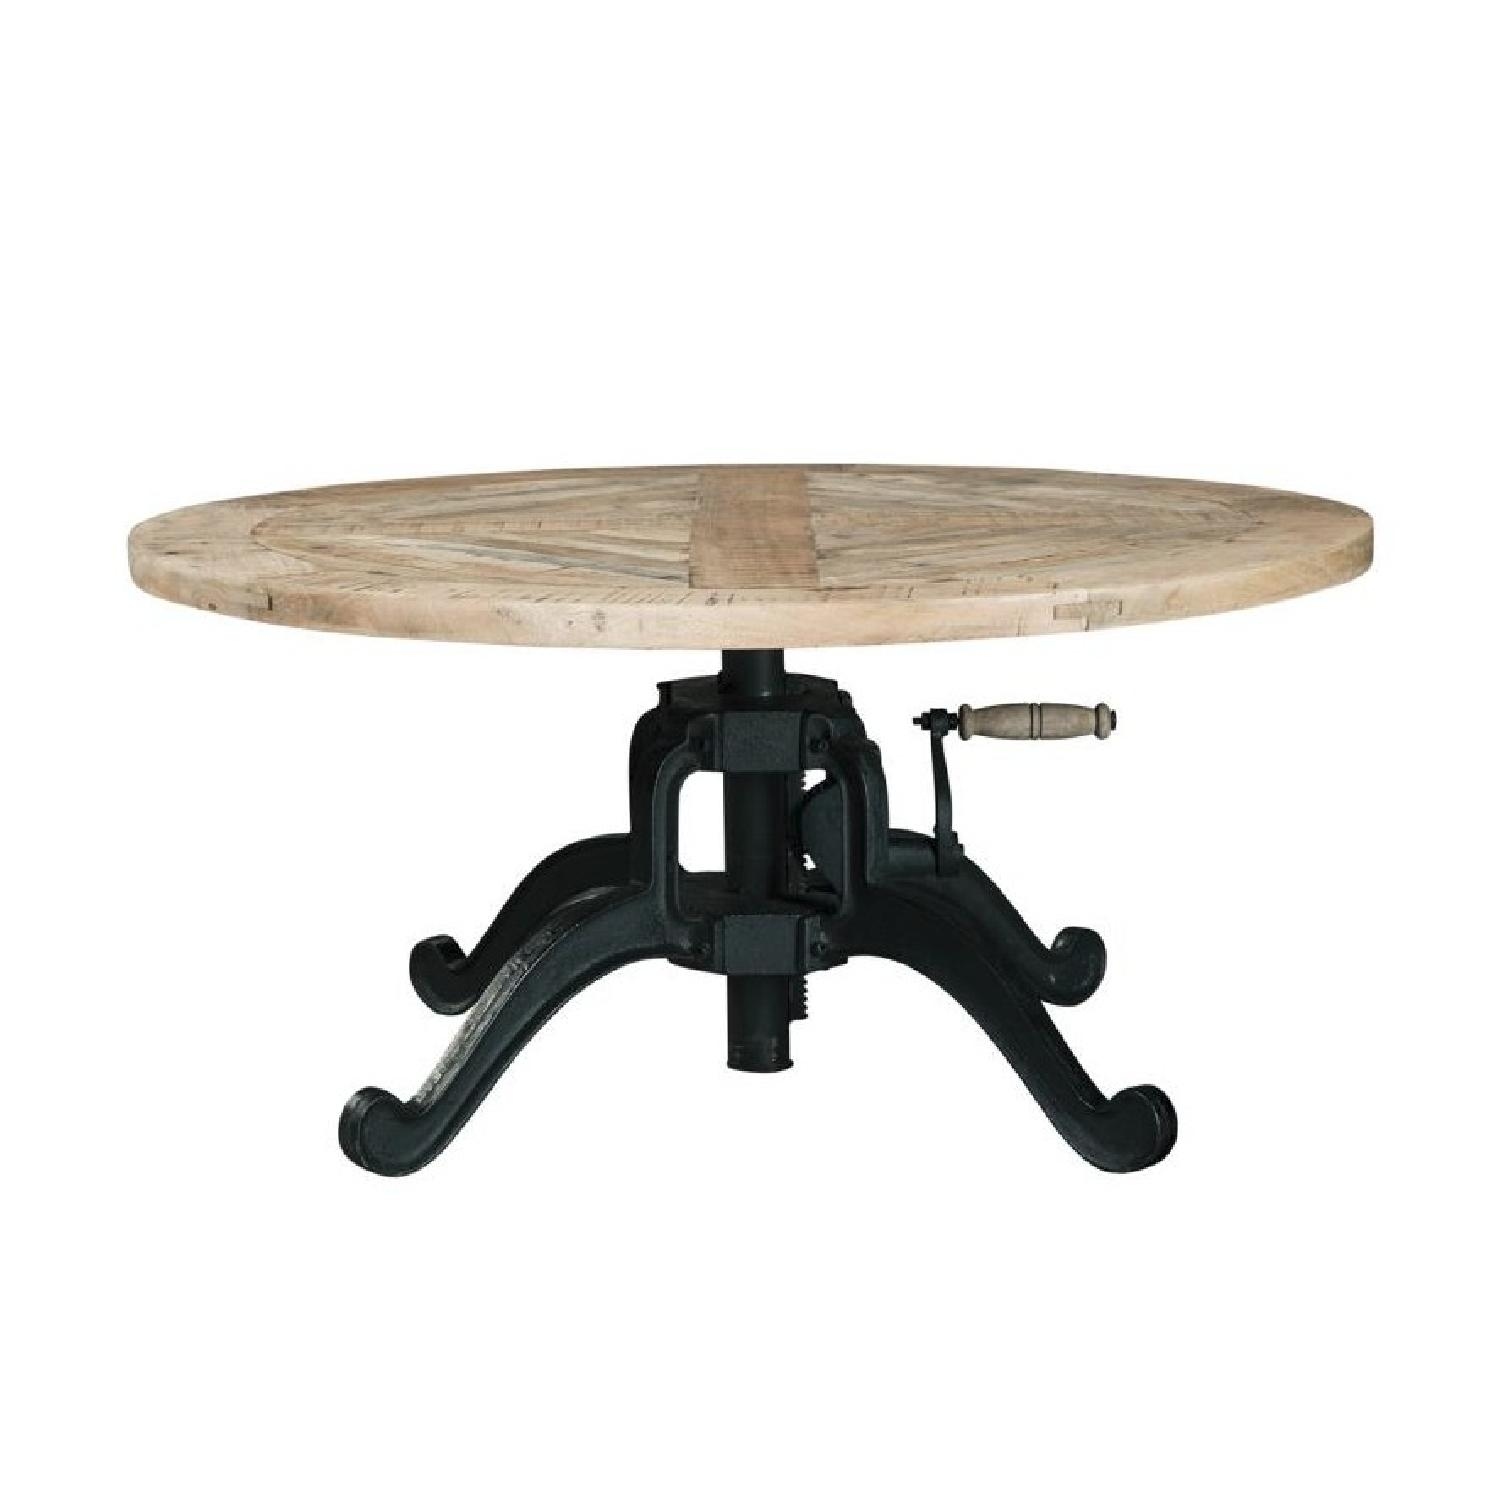 Round Coffee Table With Adjustable Height: Height Adjustable Round Coffee Table W/ Crank Handle